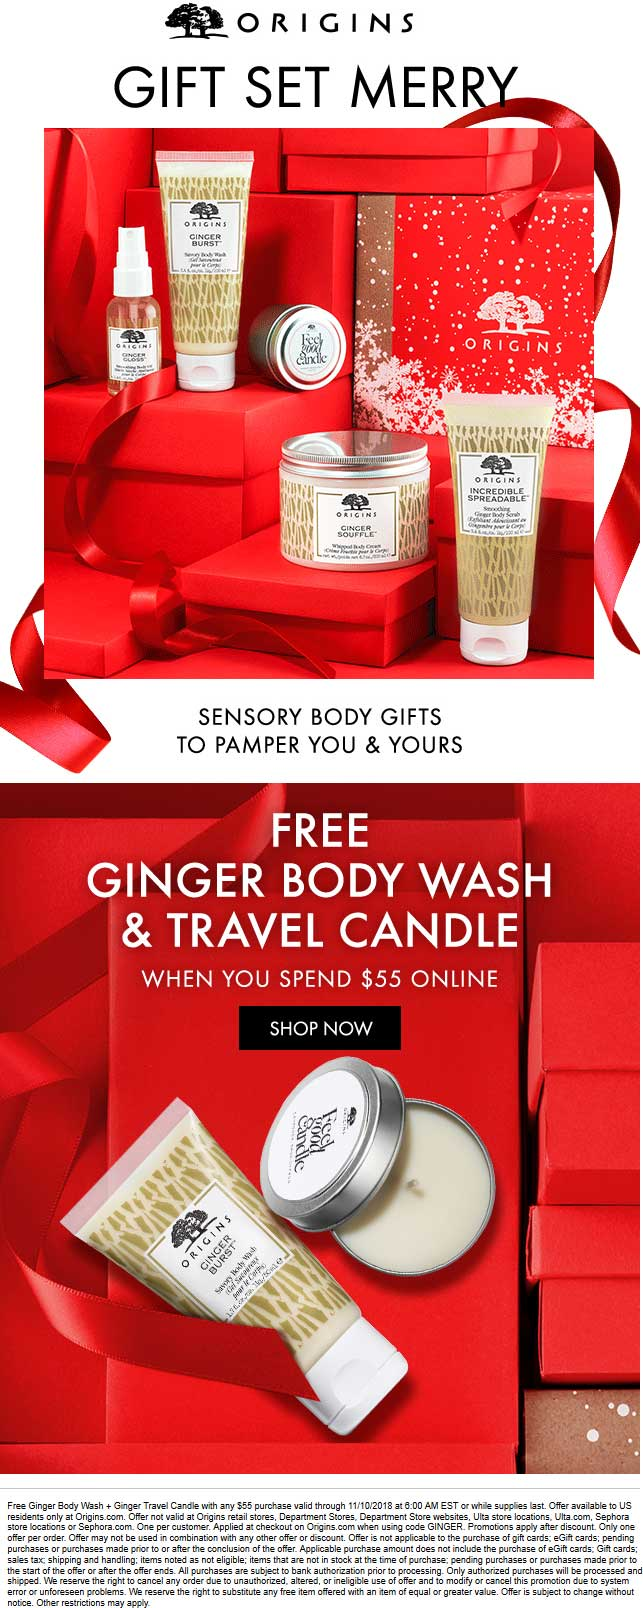 Origins Coupon August 2020 Free Ginger body wash + candle with $55 spent online at Origins via promo code GINGER